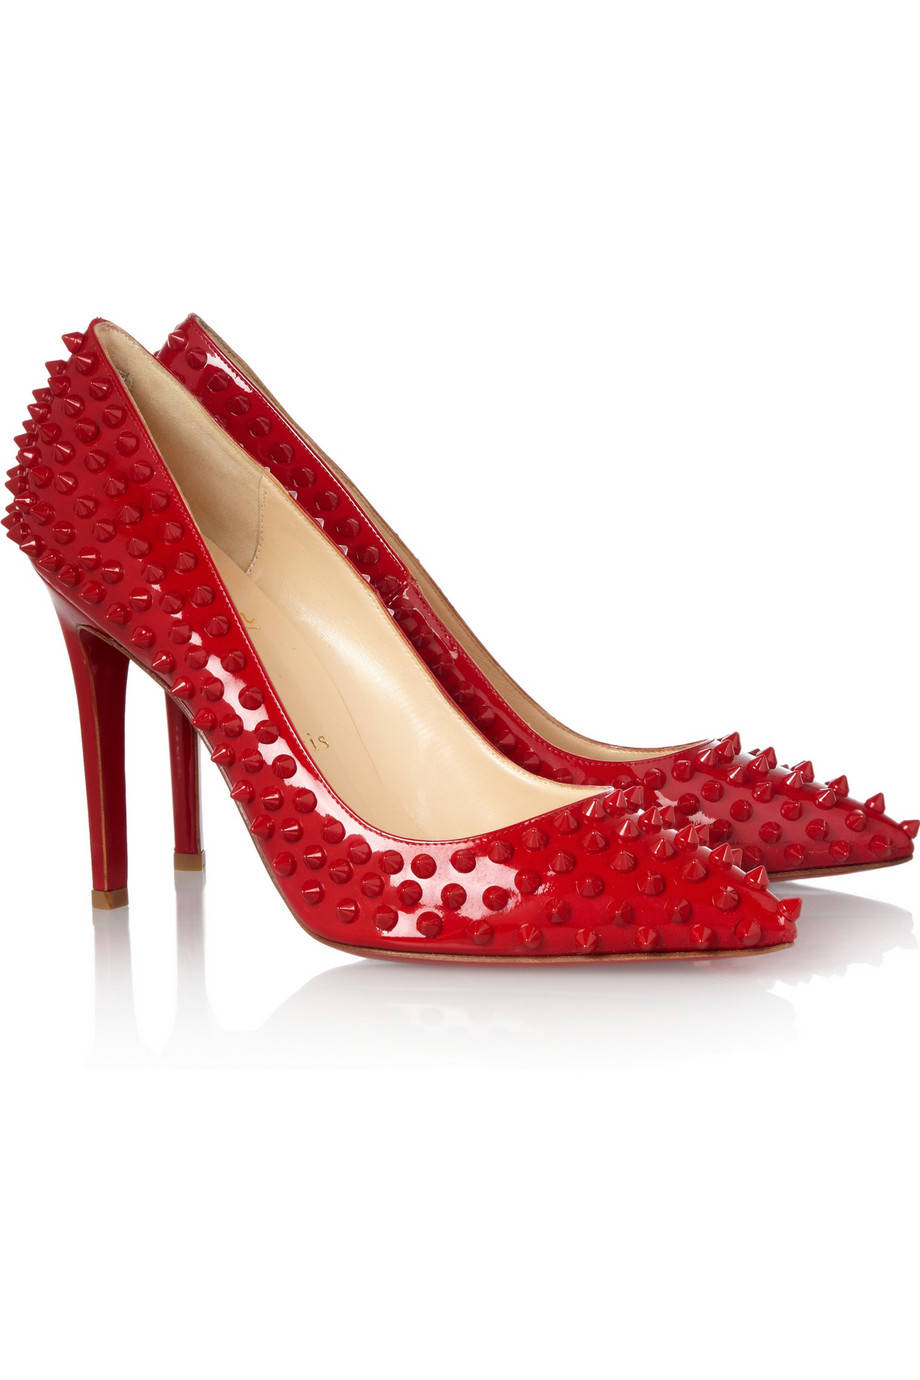 ff5c8dd63451 Lyst - Christian Louboutin Pigalle 100 Spiked Patentleather Pumps in Red